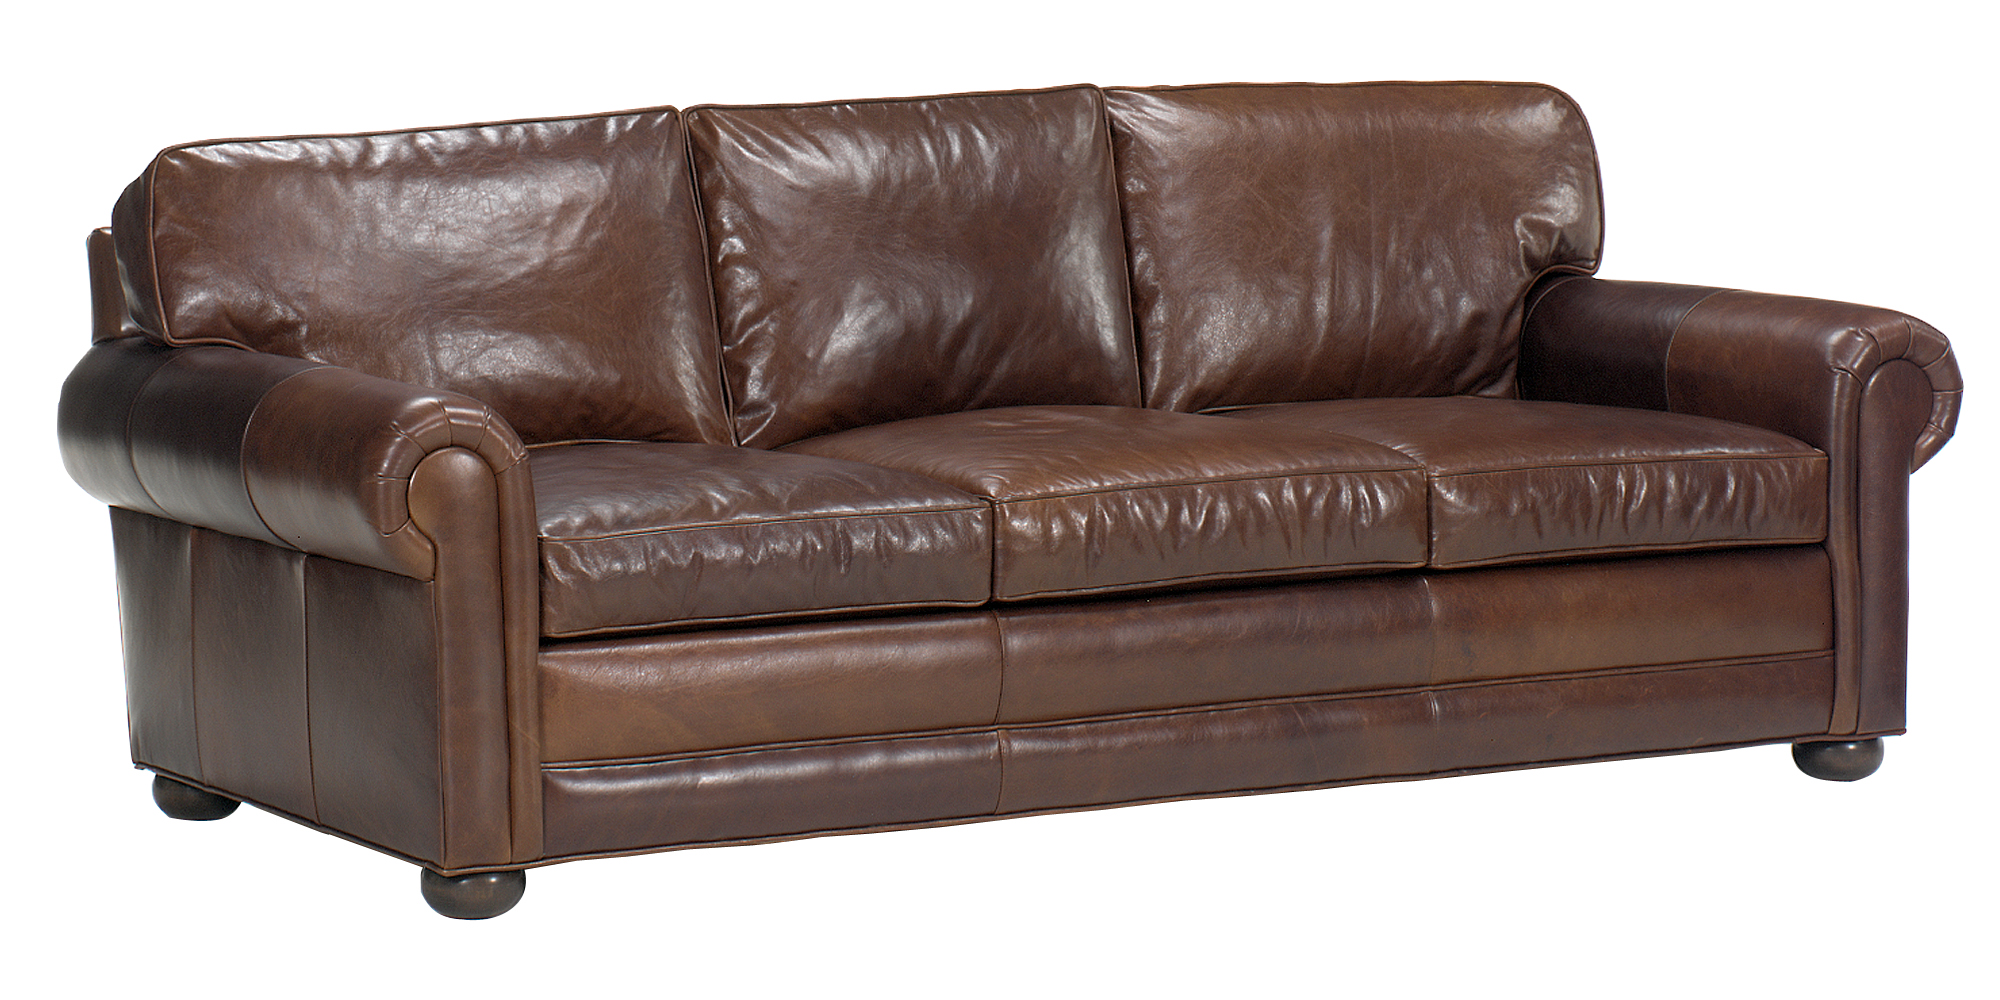 Oversized large deep seated leather furniture club furniture for Furniture leather sofa